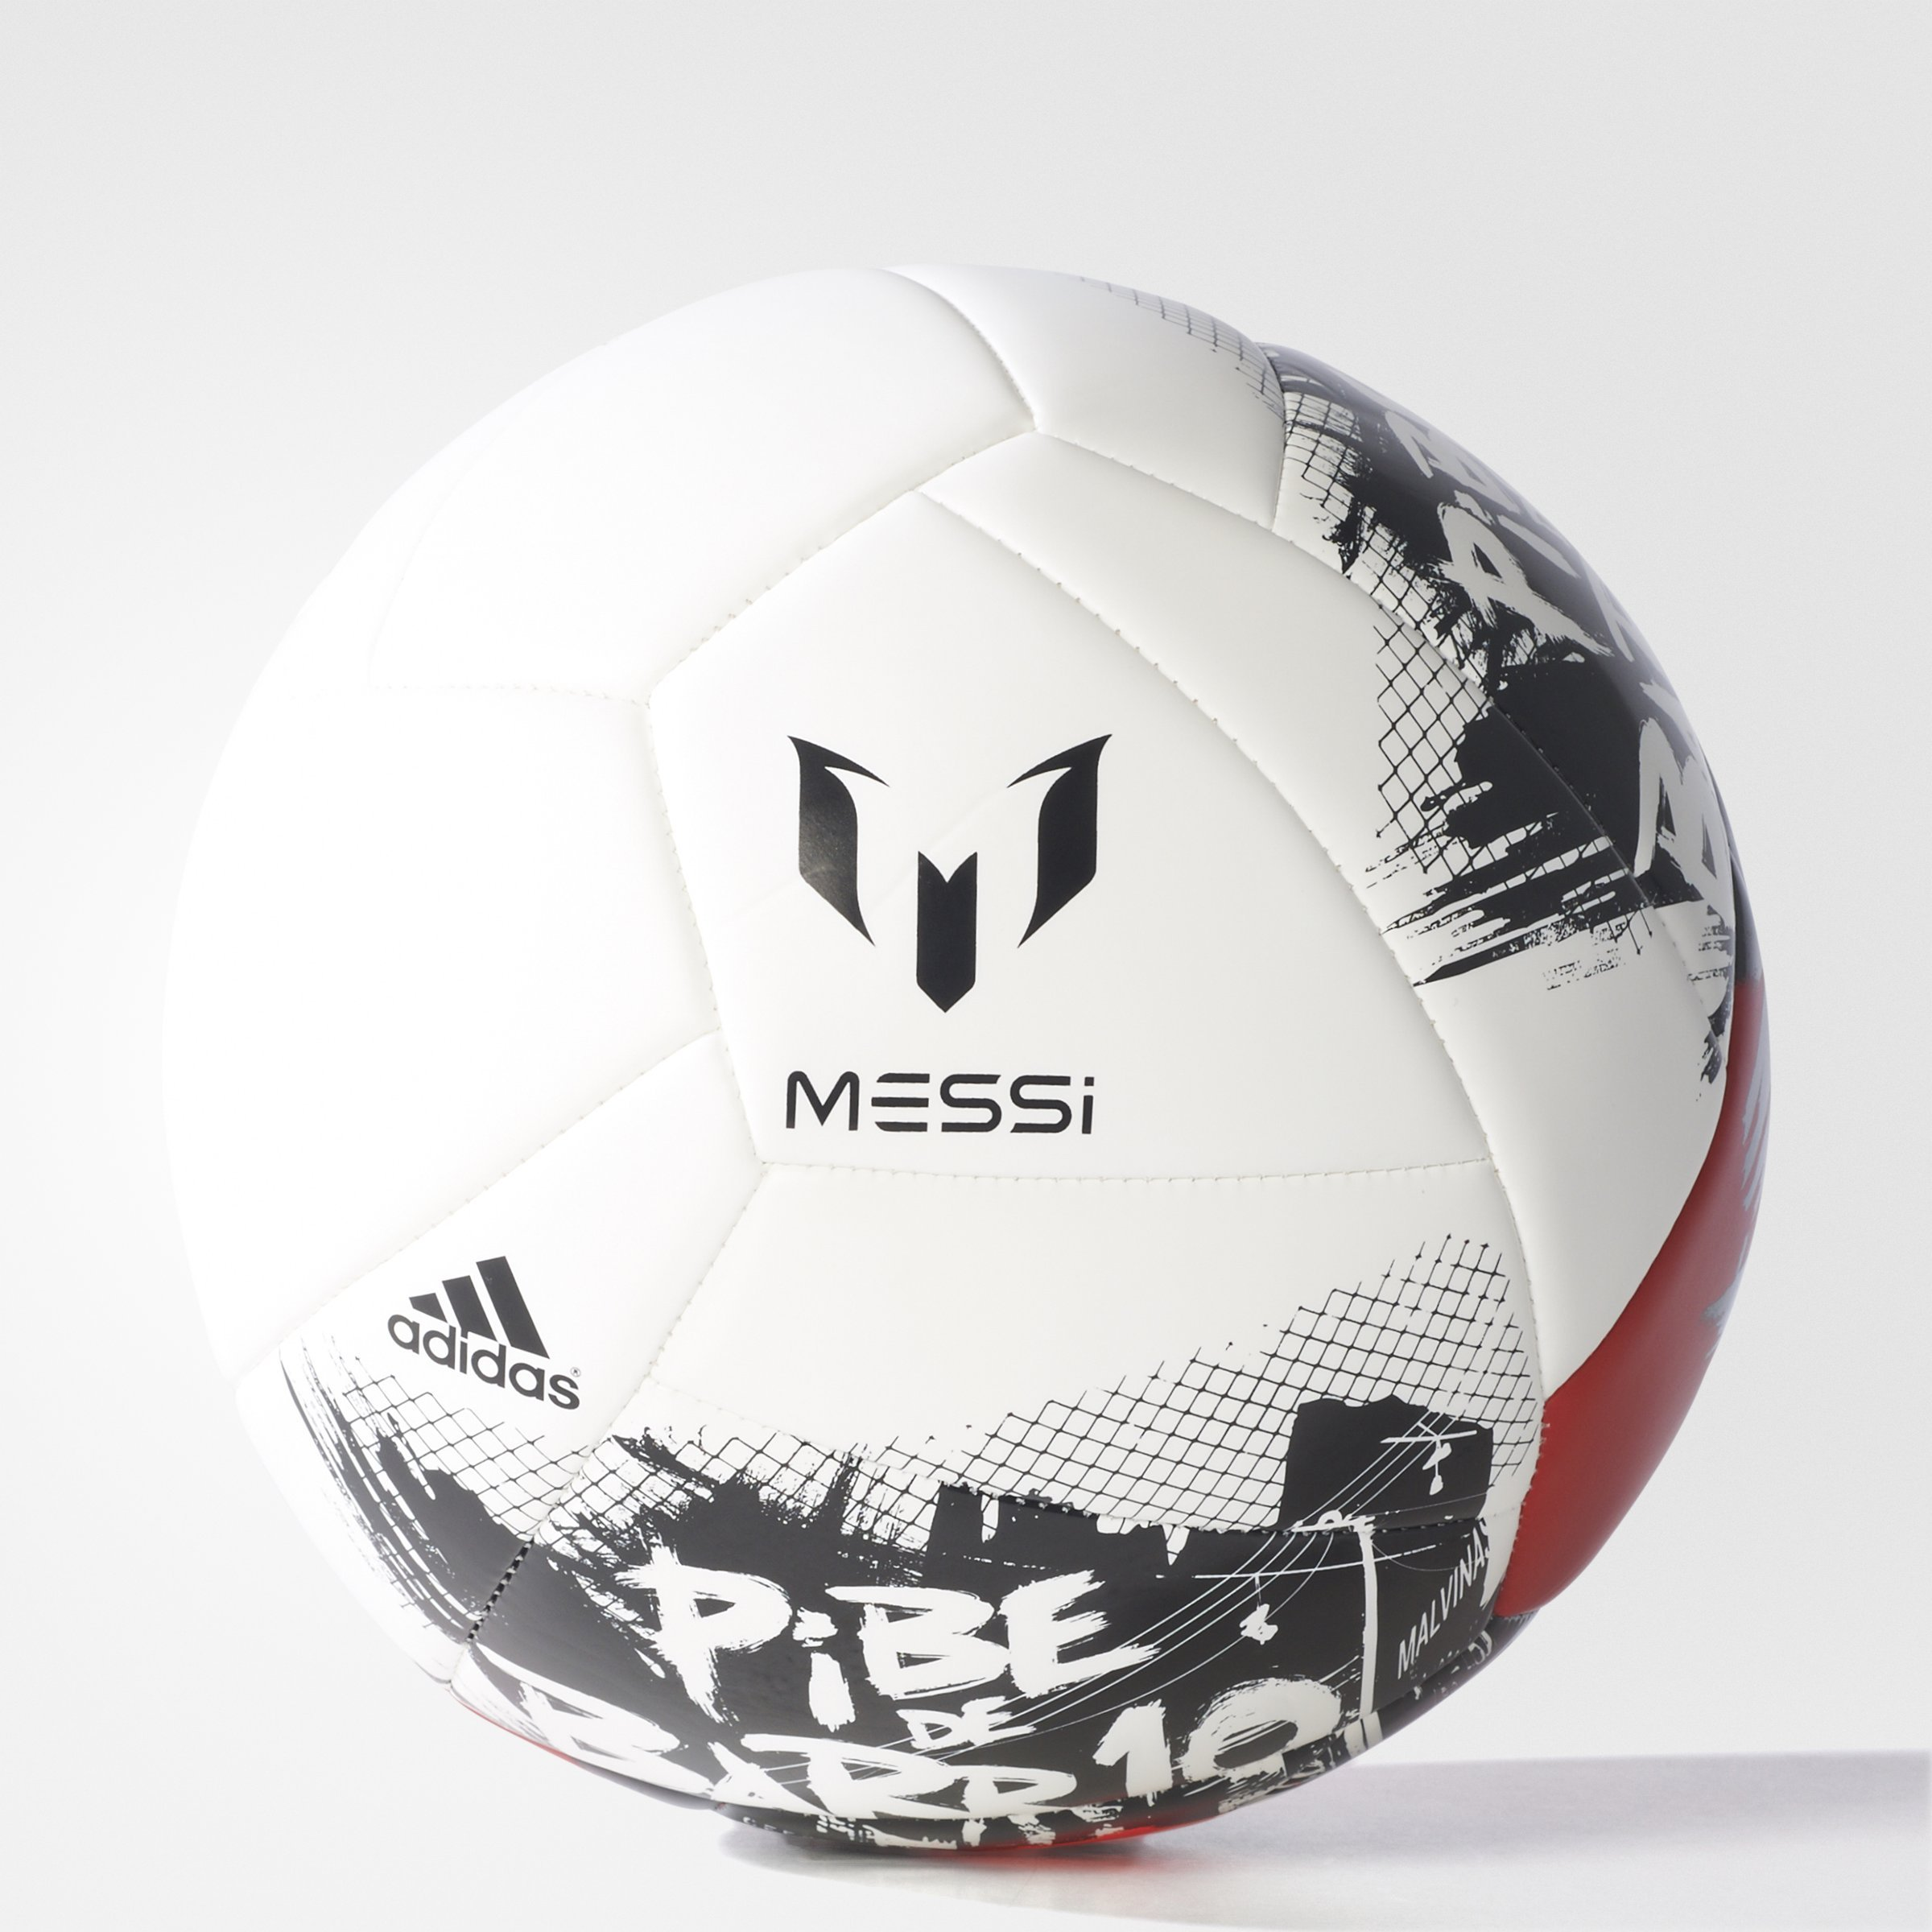 661f611d7 Adidas Shoes Canada Messi Adidas Commercial  Adidas Performance Messi  Soccer Ball